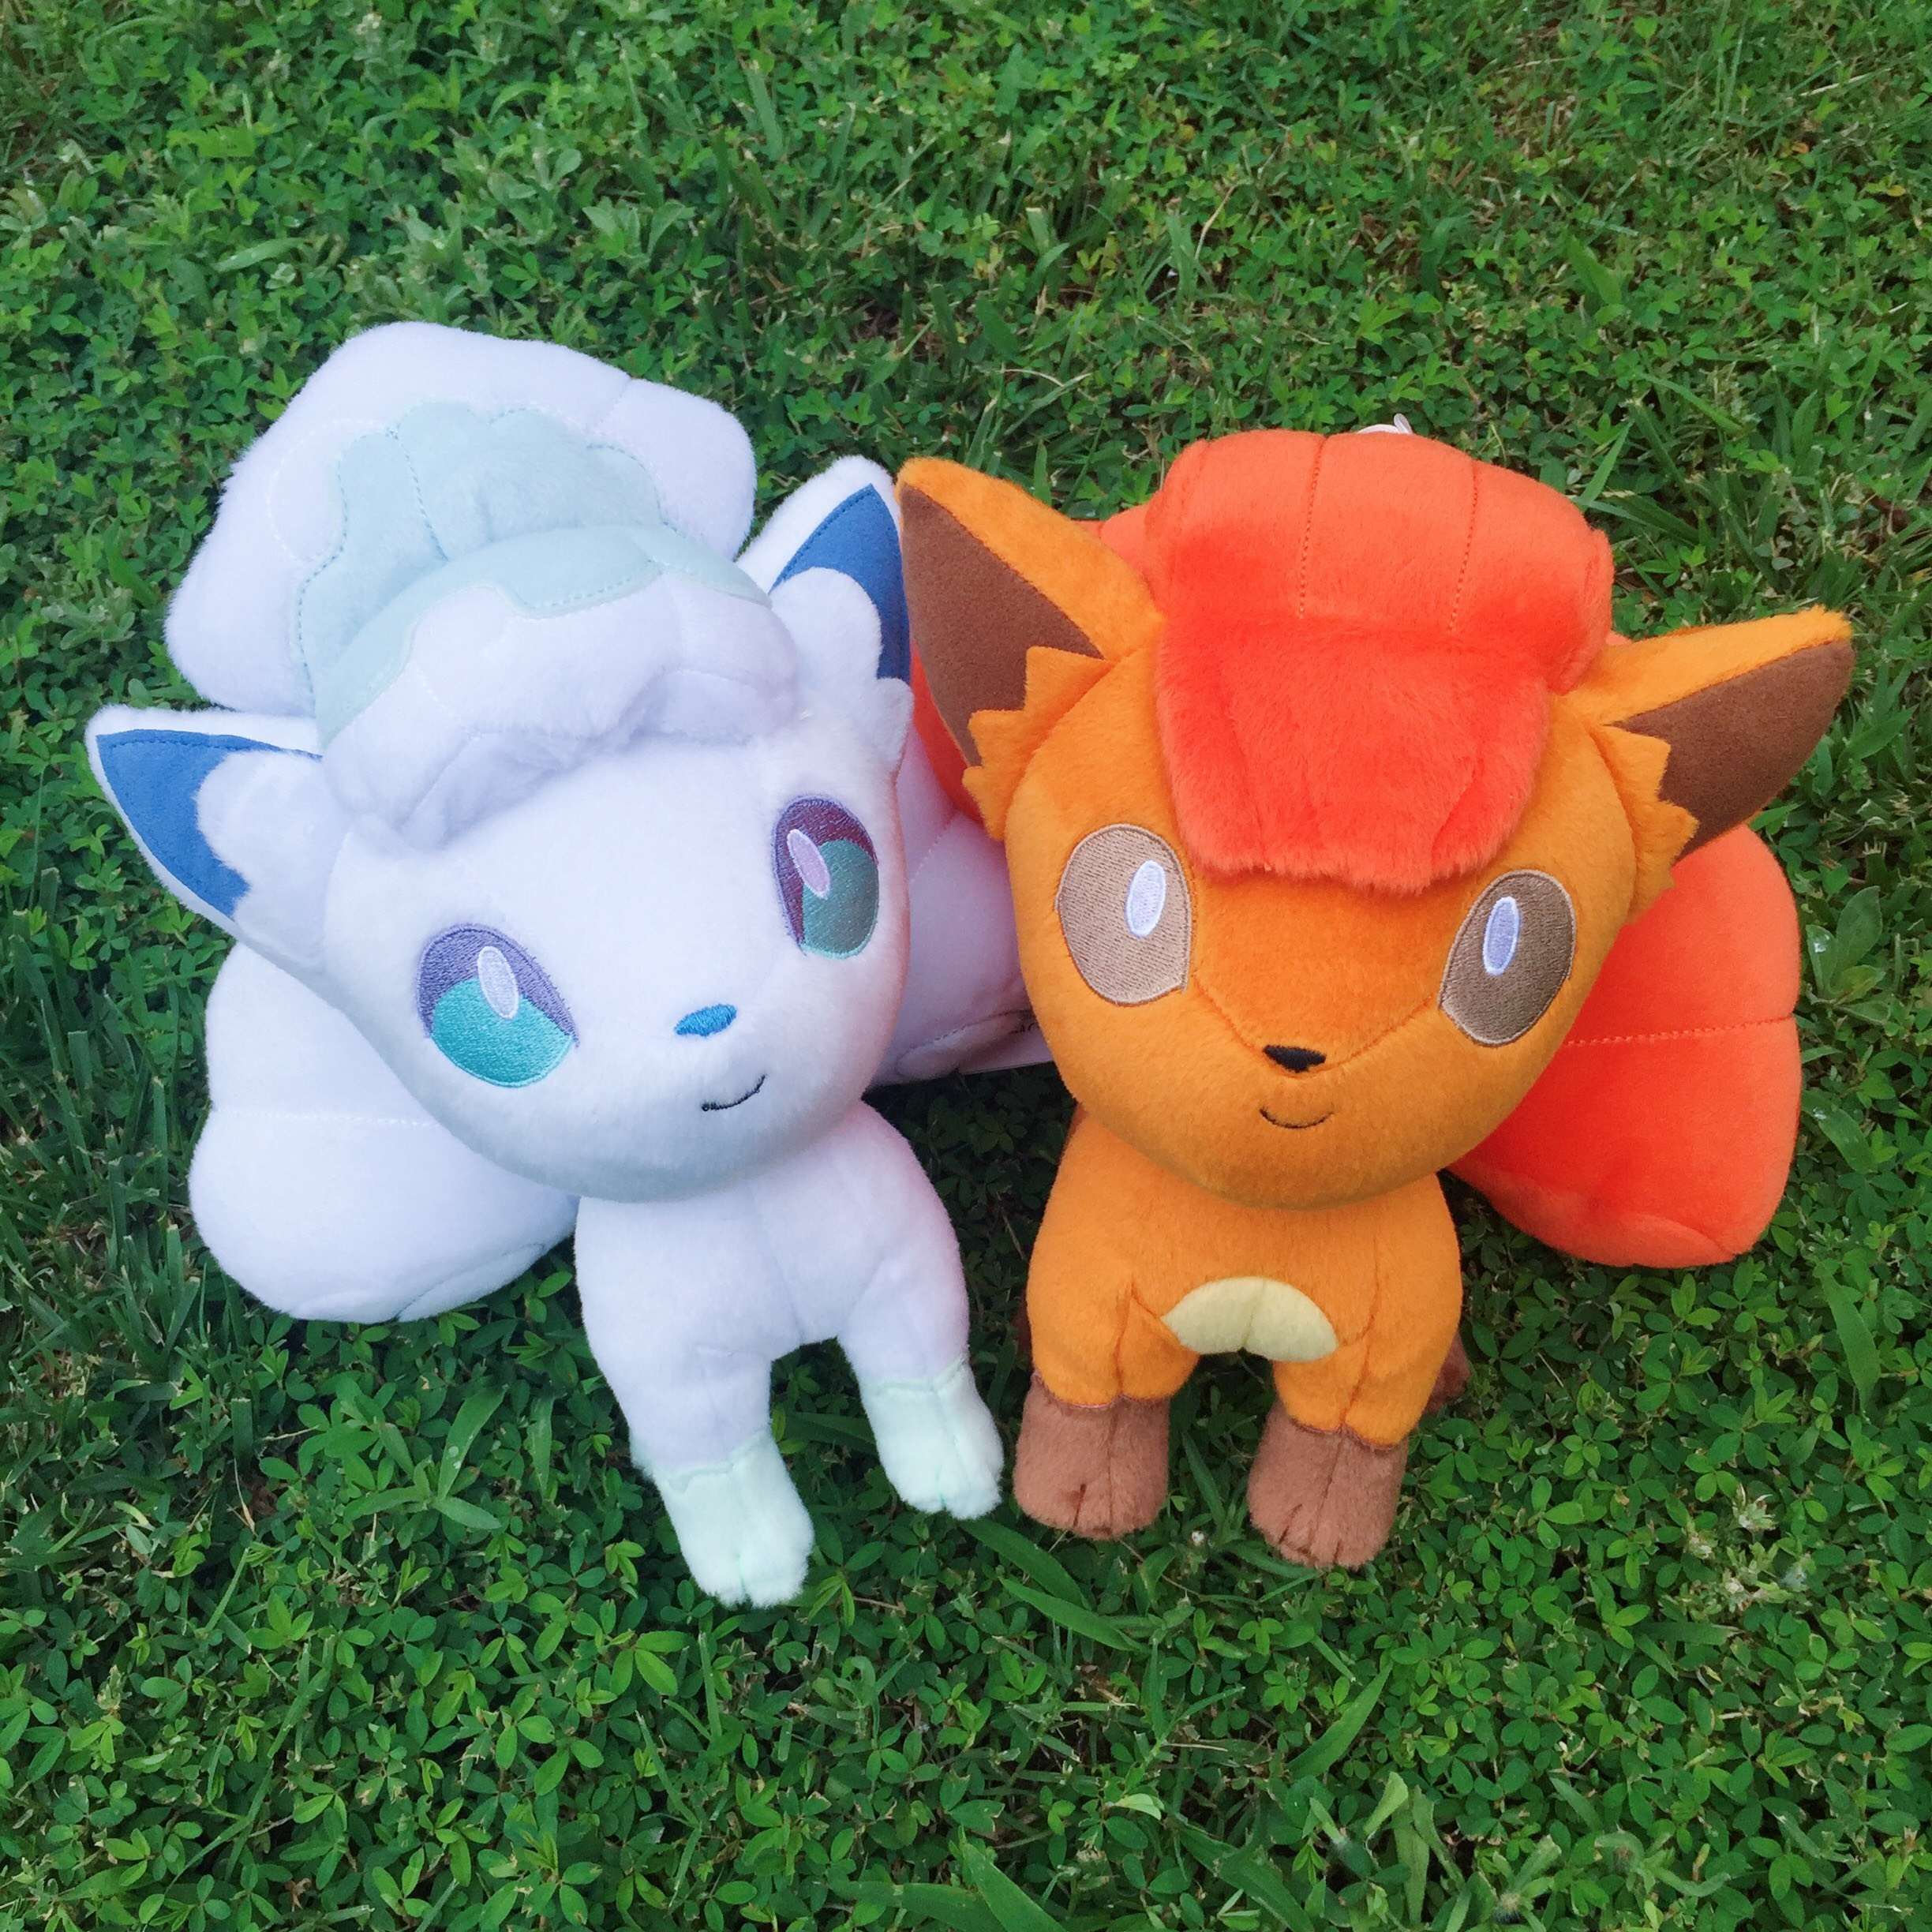 Today, we have a pair of adorable little foxes who've marched all the way from the land of Pokémon and are eager to meet you. Come and see two of our hottest (and coldest) new plush items from Banpresto! -